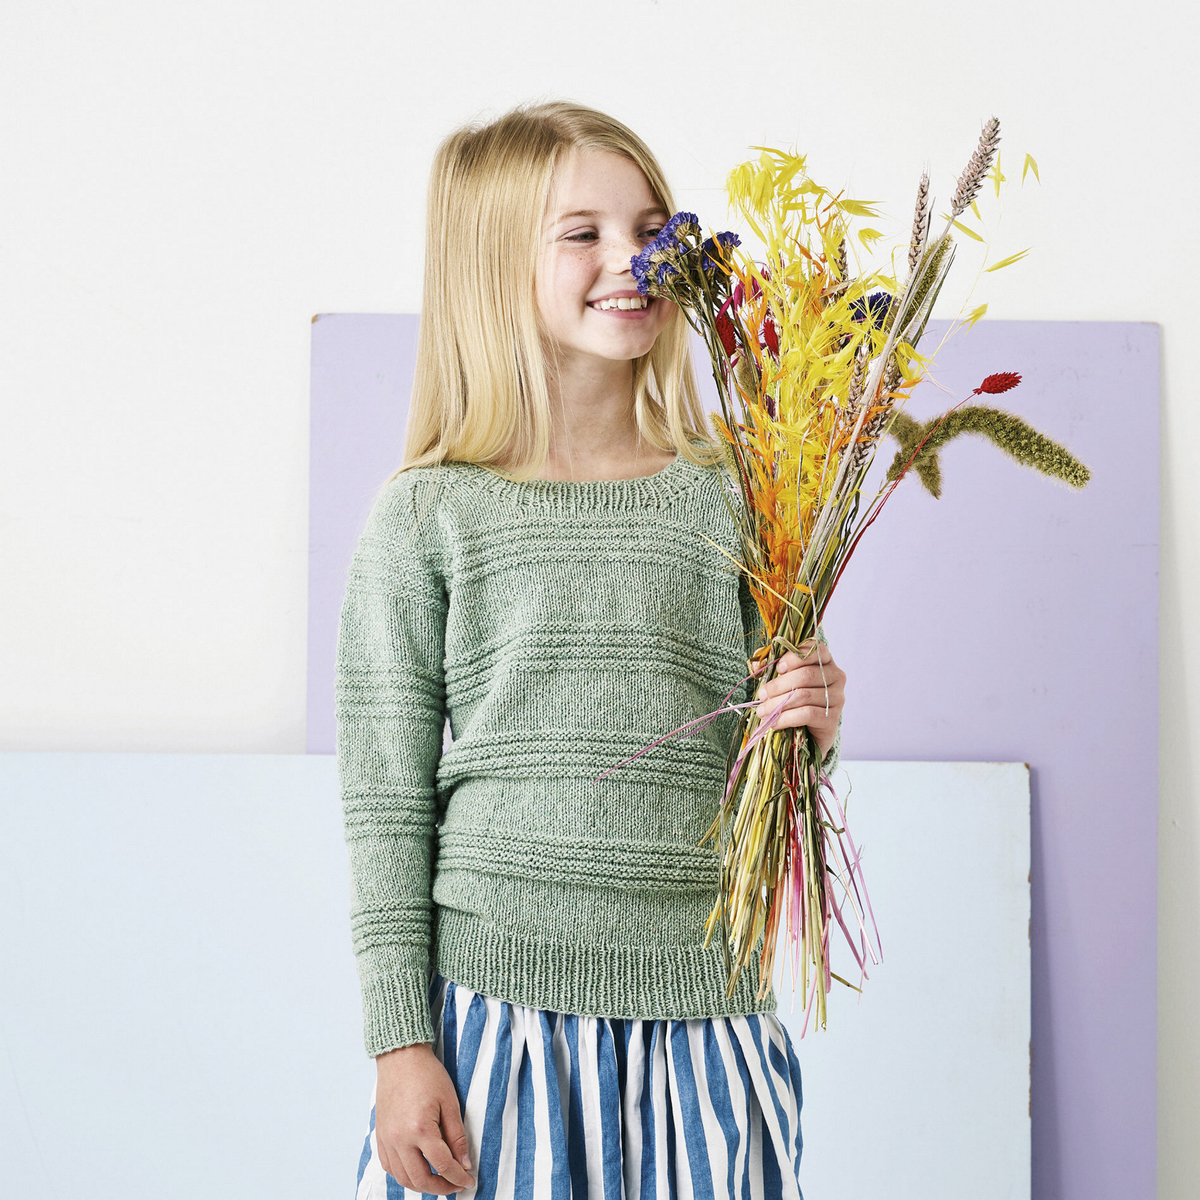 Knit a child's jumper with a textured pattern